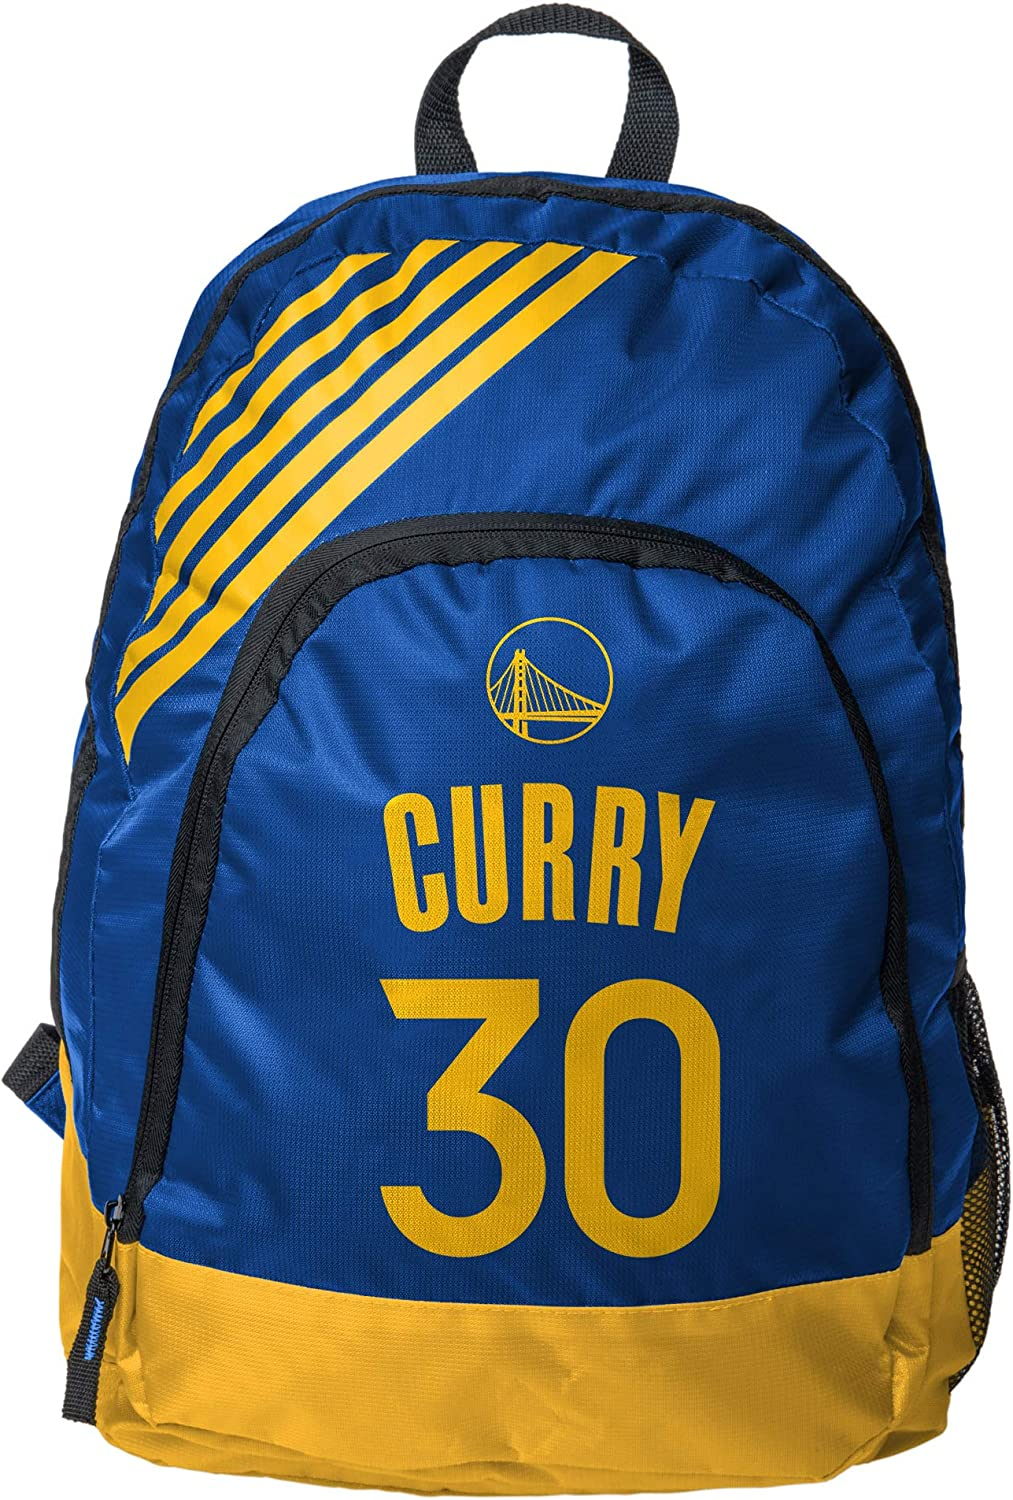 Golden State Warriors Curry S. Backpack Stripe Brand new Border #30 Factory outlet